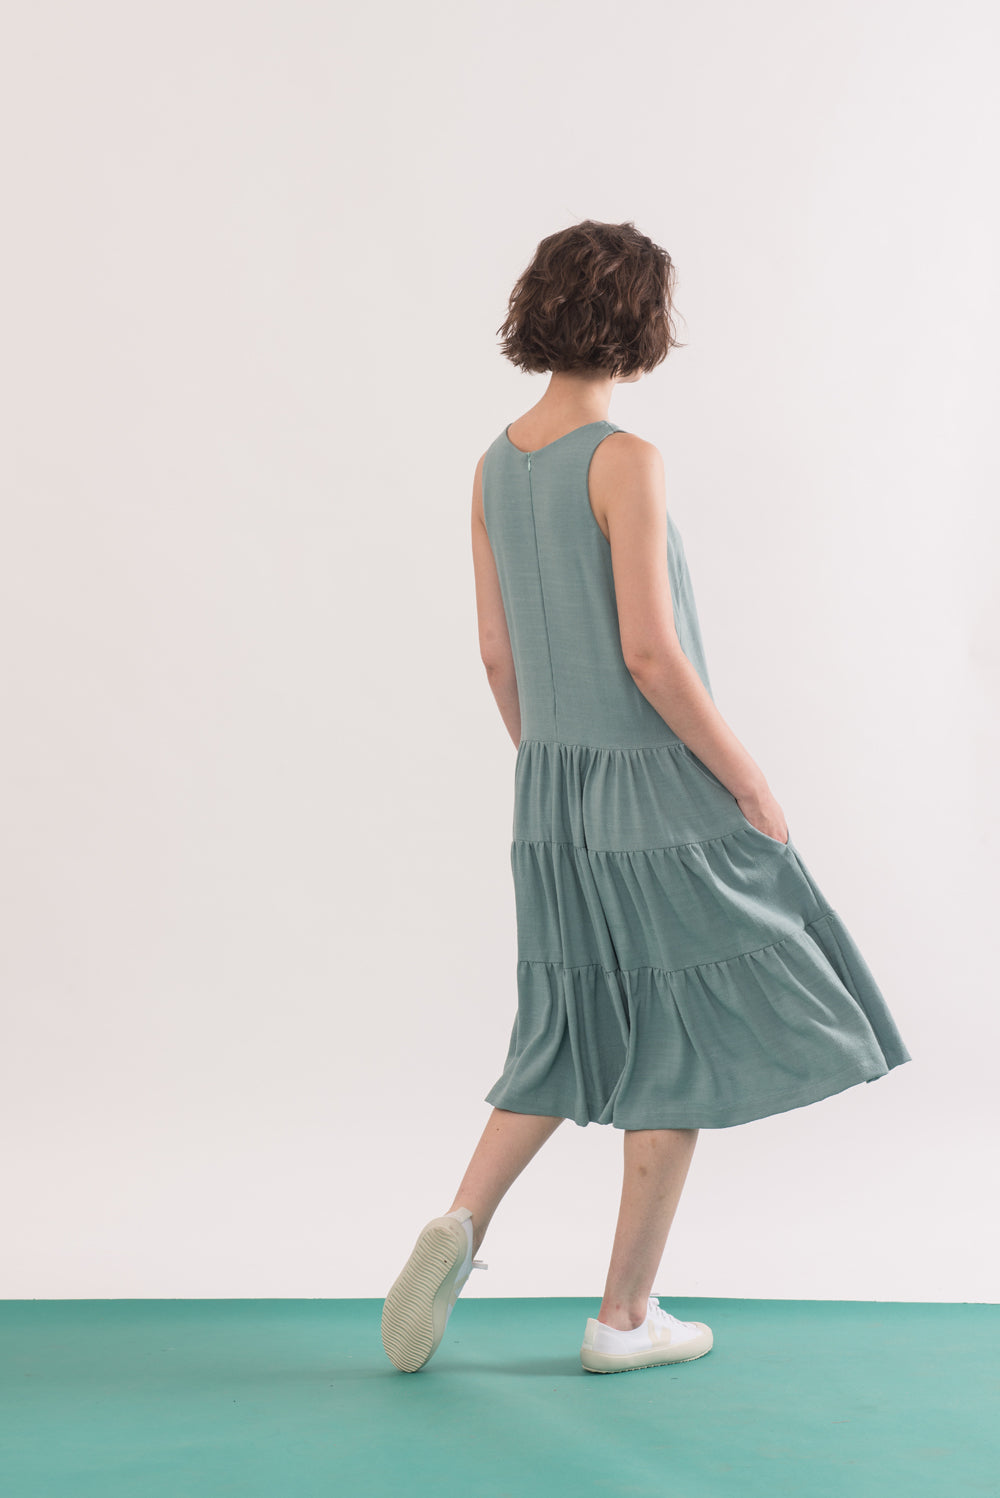 Chagall Dress by Jennifer Glasgow, back view, Seafoam, sleeveless, three-tiered, pockets, rayon and linen, sizes XS to XL, made in Montreal